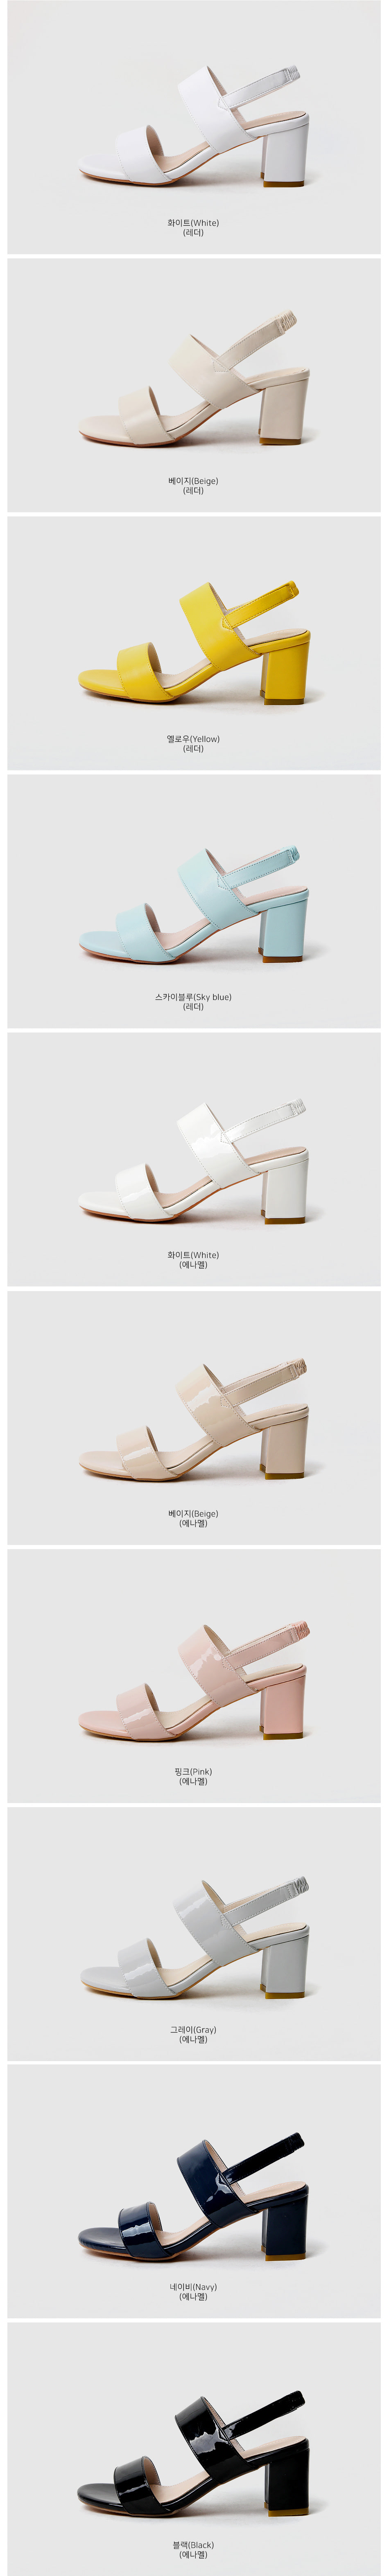 Two Charming Slingback Sandals 6cm